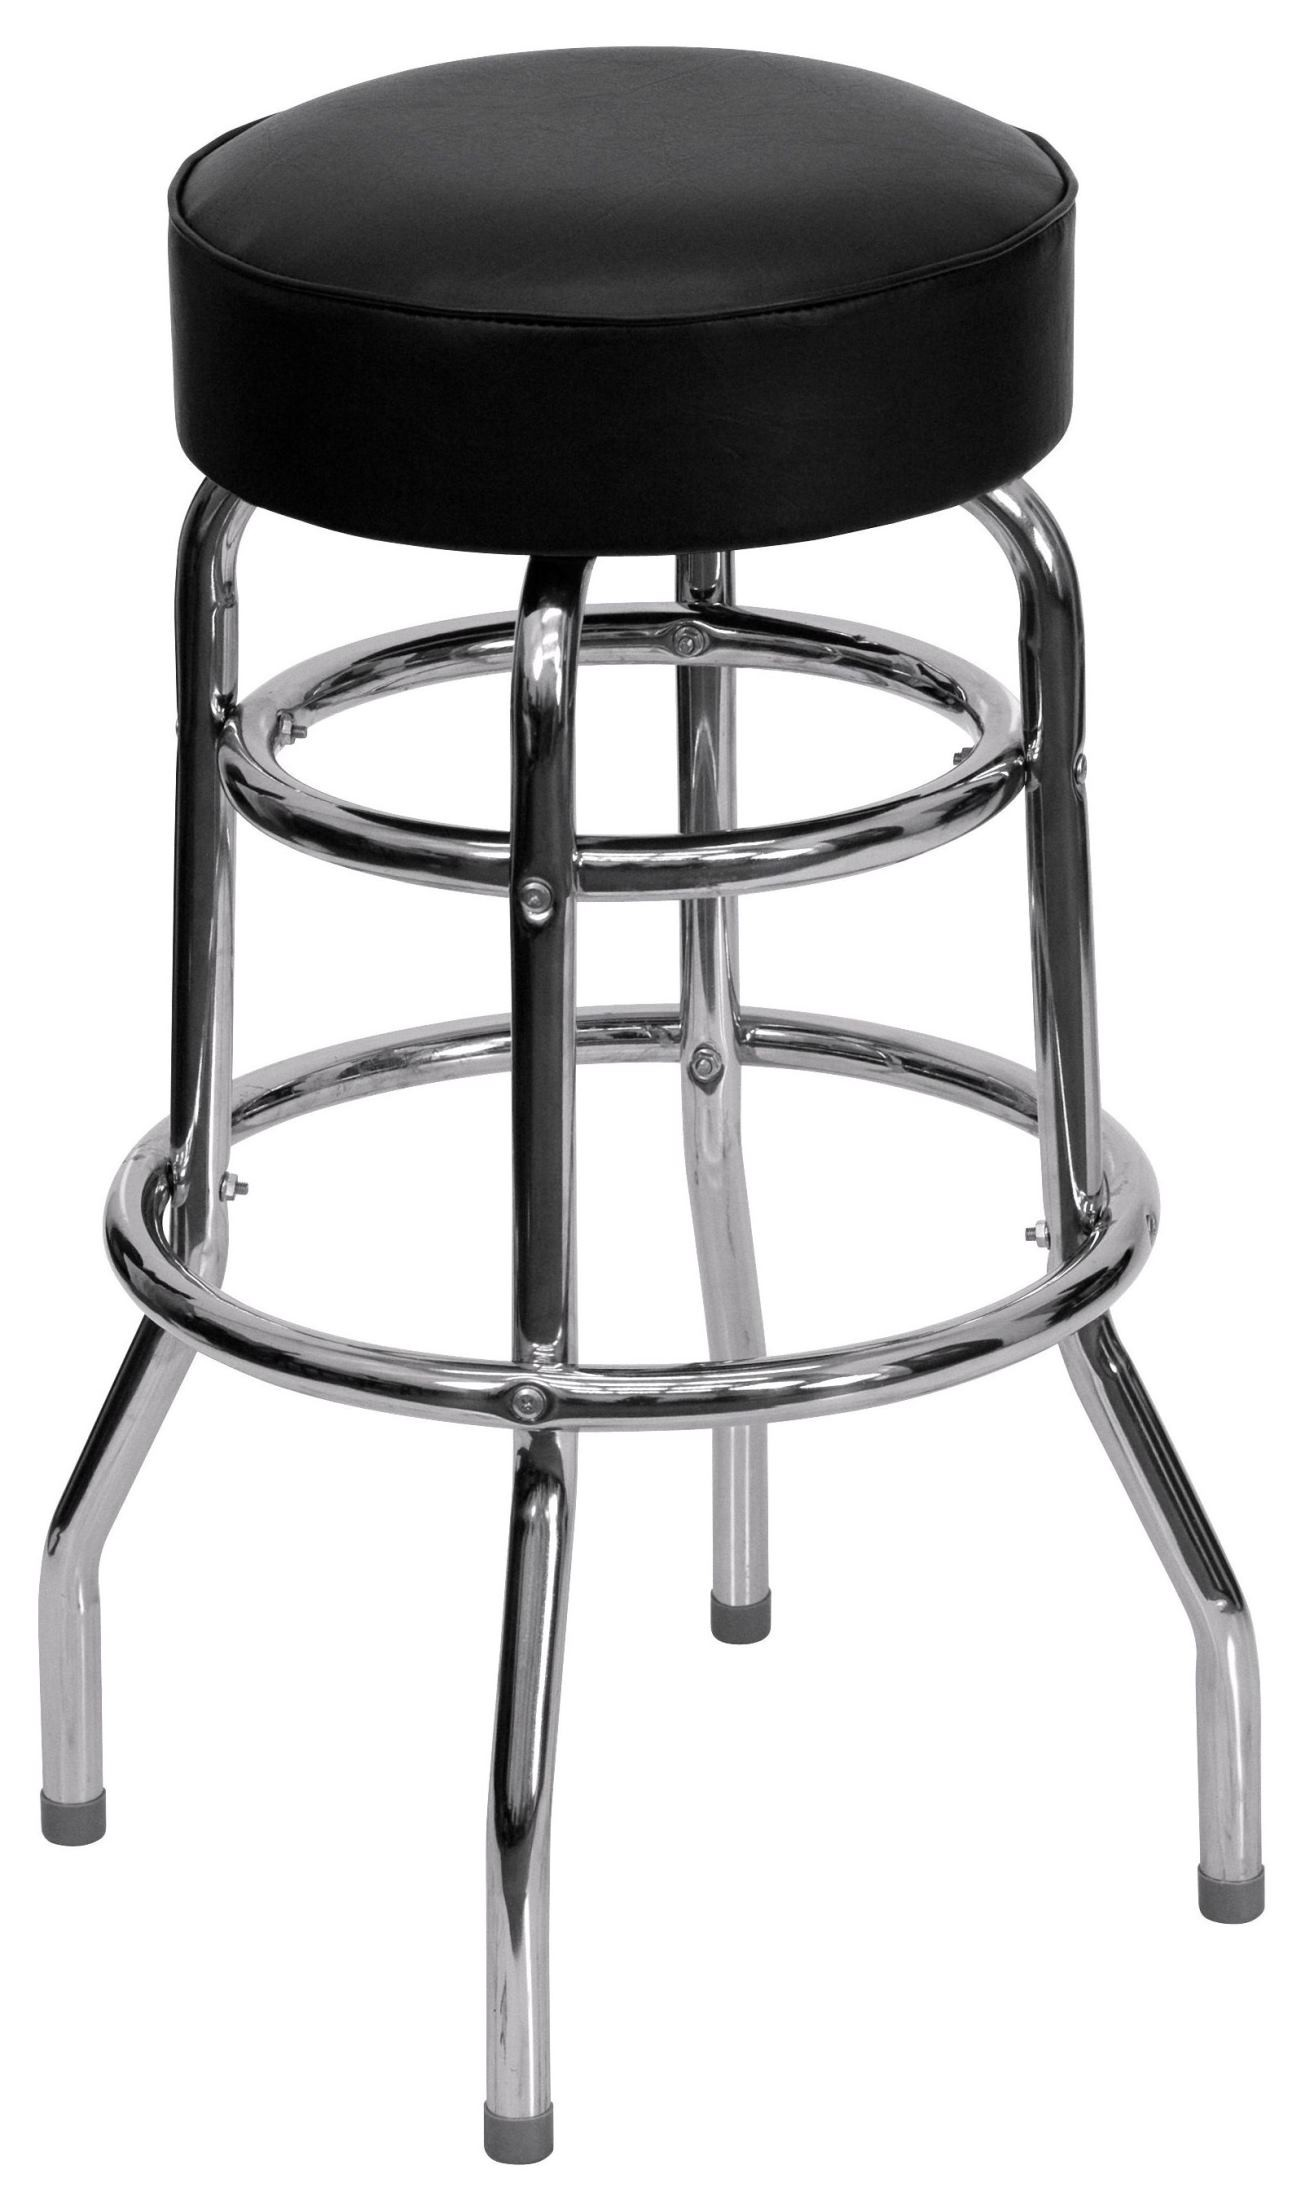 double ring chrome bar stool from renegade coleman furniture